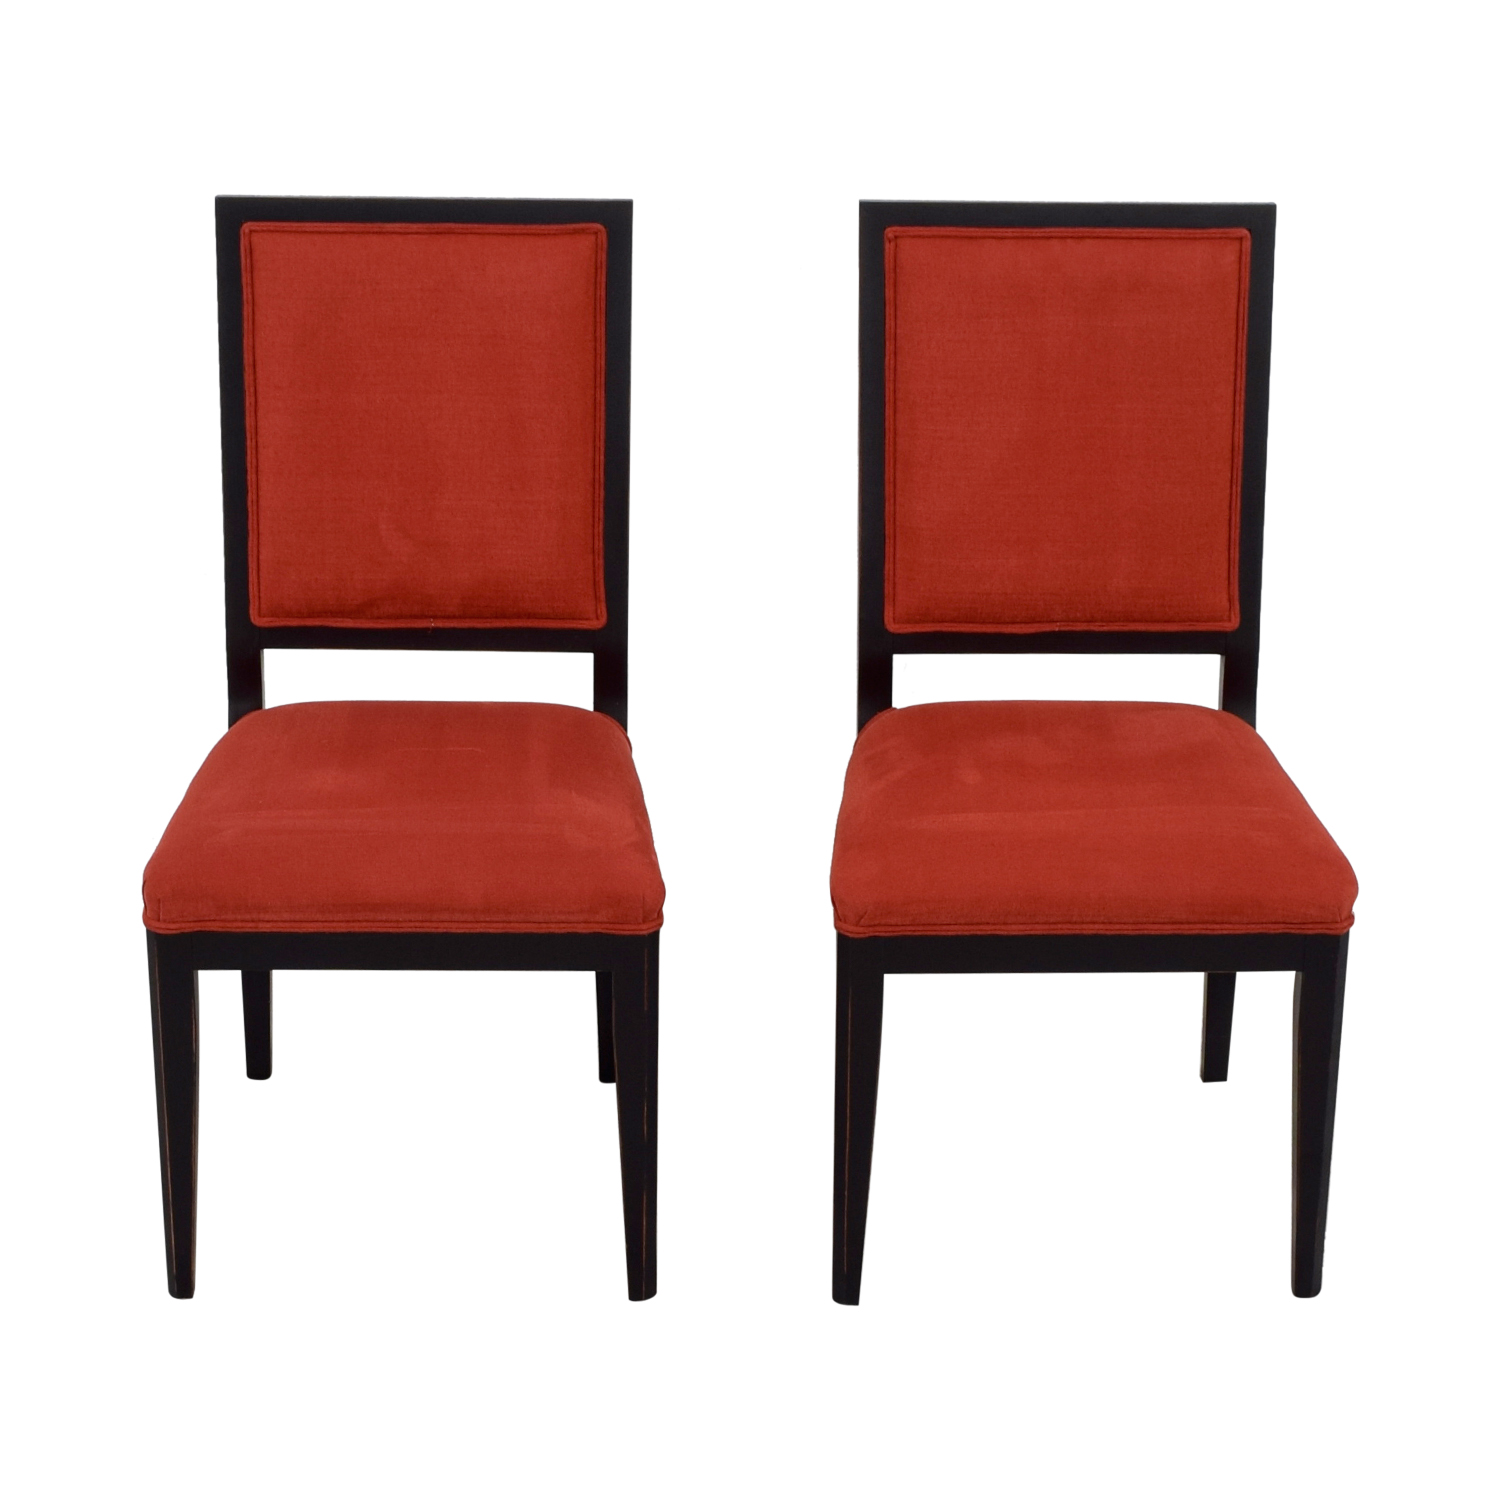 Red Upholstered Dining Chairs 90 Off Buying Design Buying And Design Red Upholstered Dining Chairs Chairs